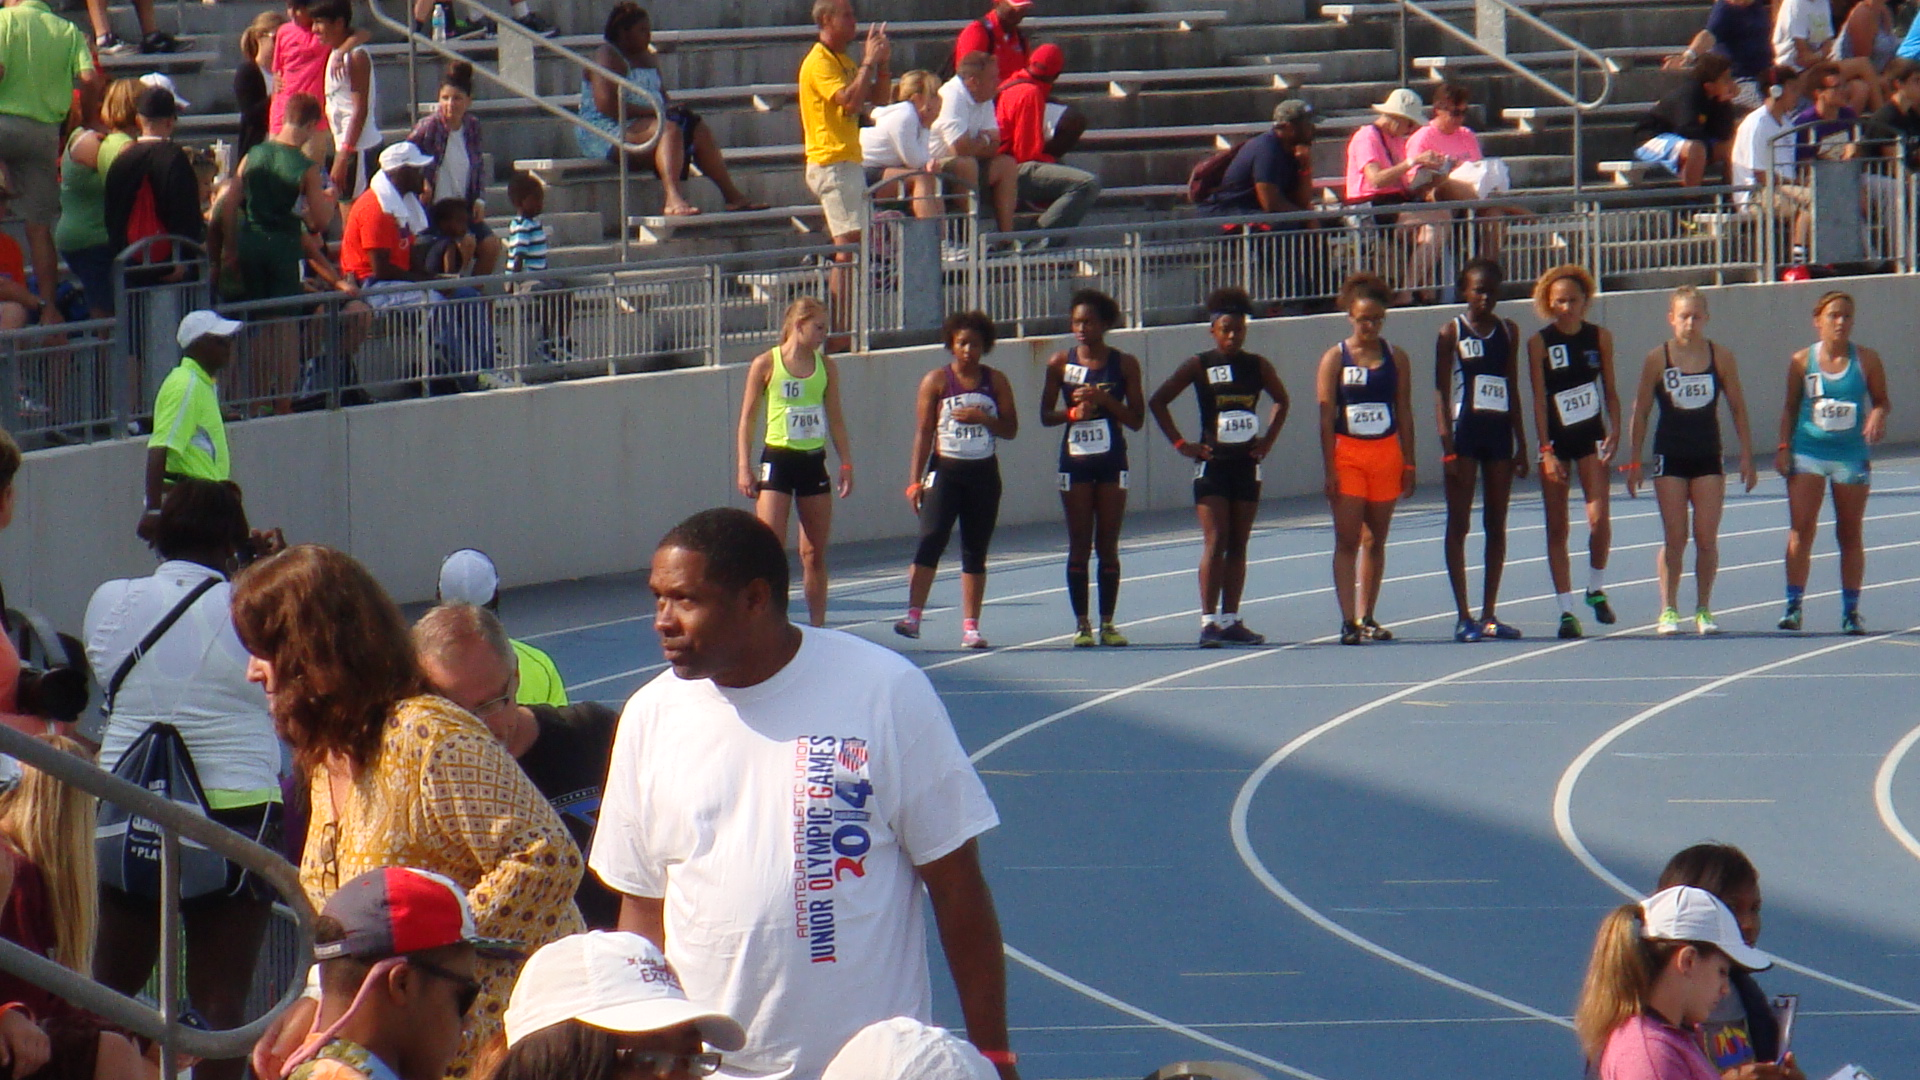 Sarah lined up for the 1500m